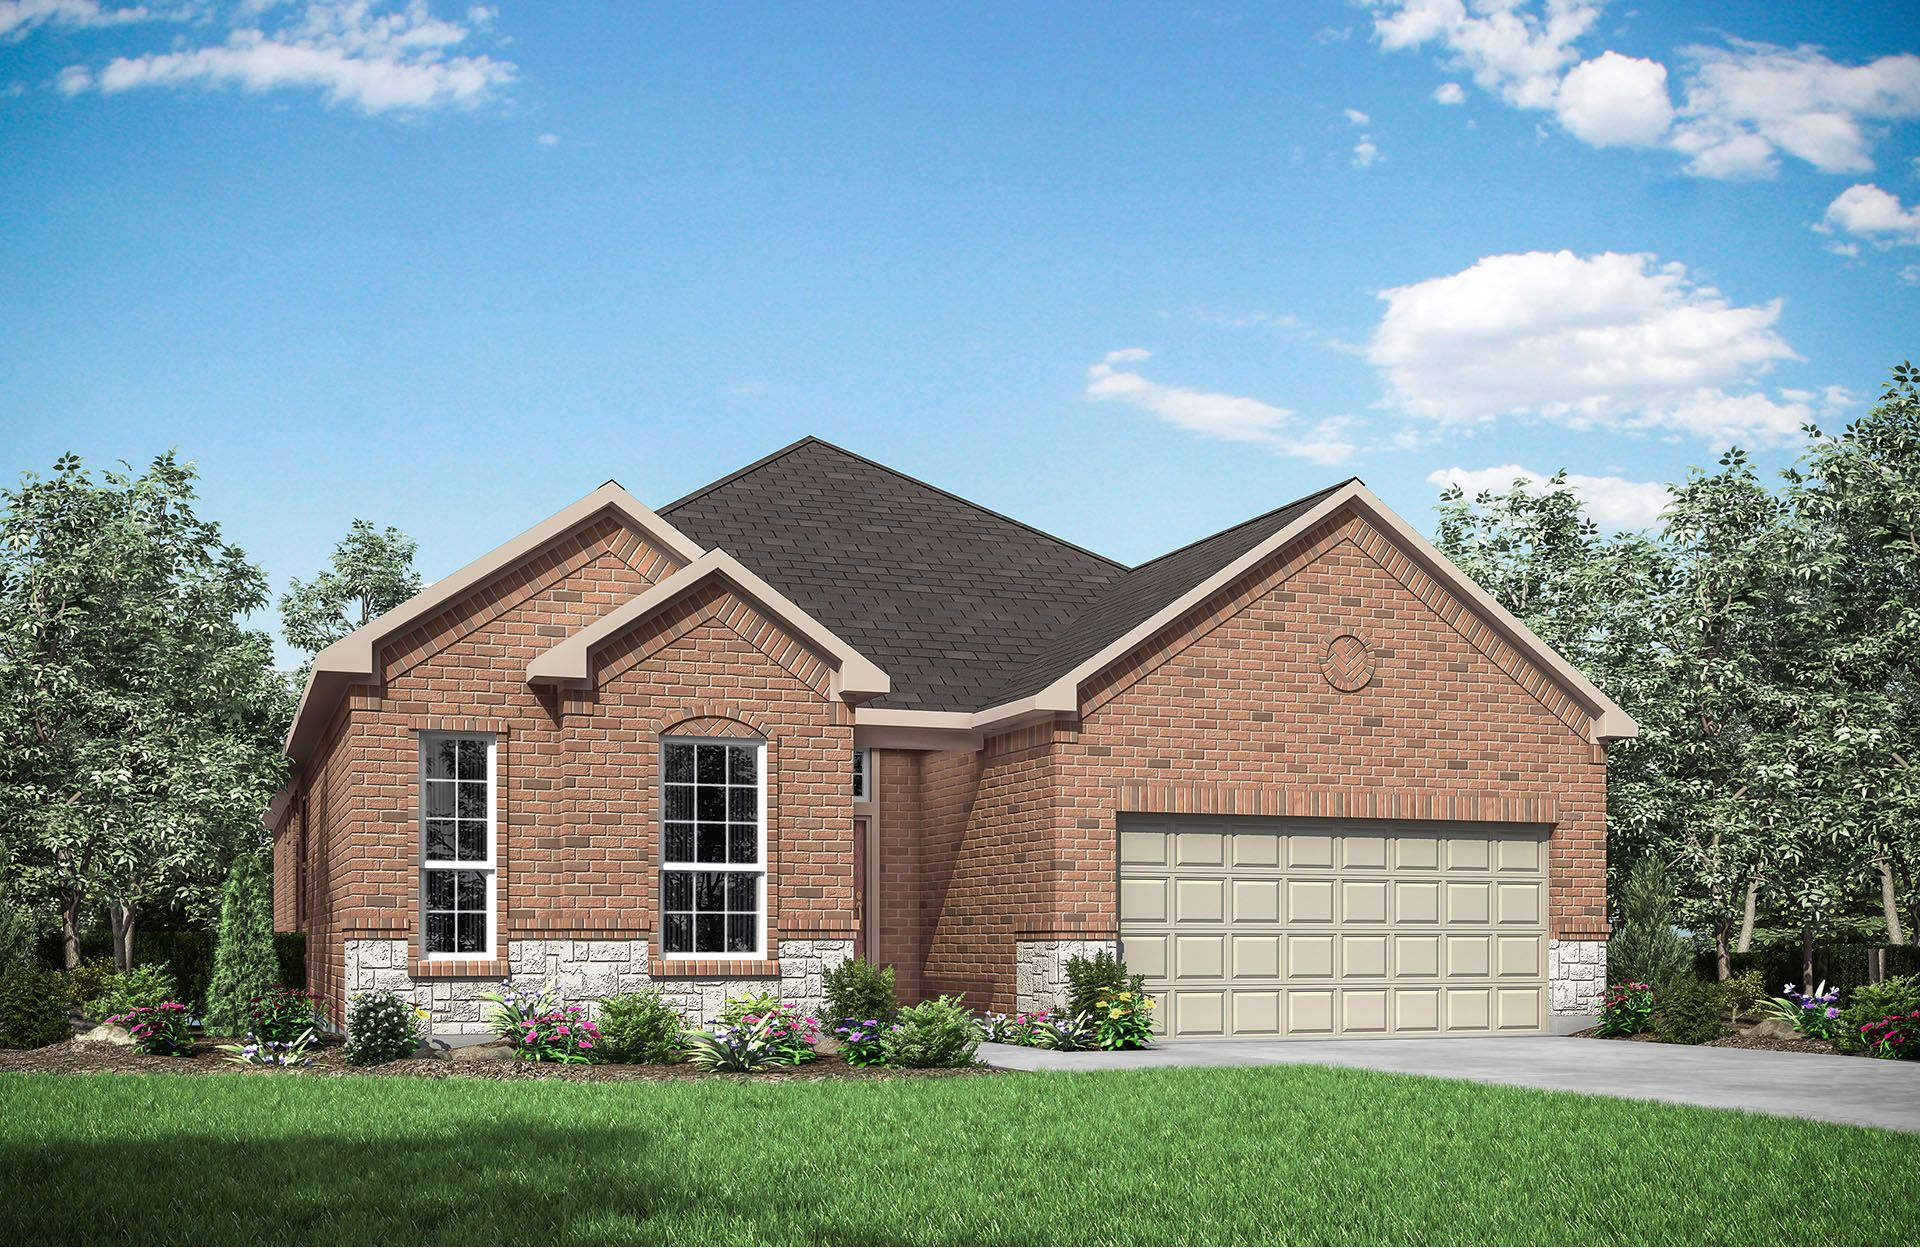 Single Family for Active at Auburn Iv 11 Sadie Court Trophy Club, Texas 76262 United States